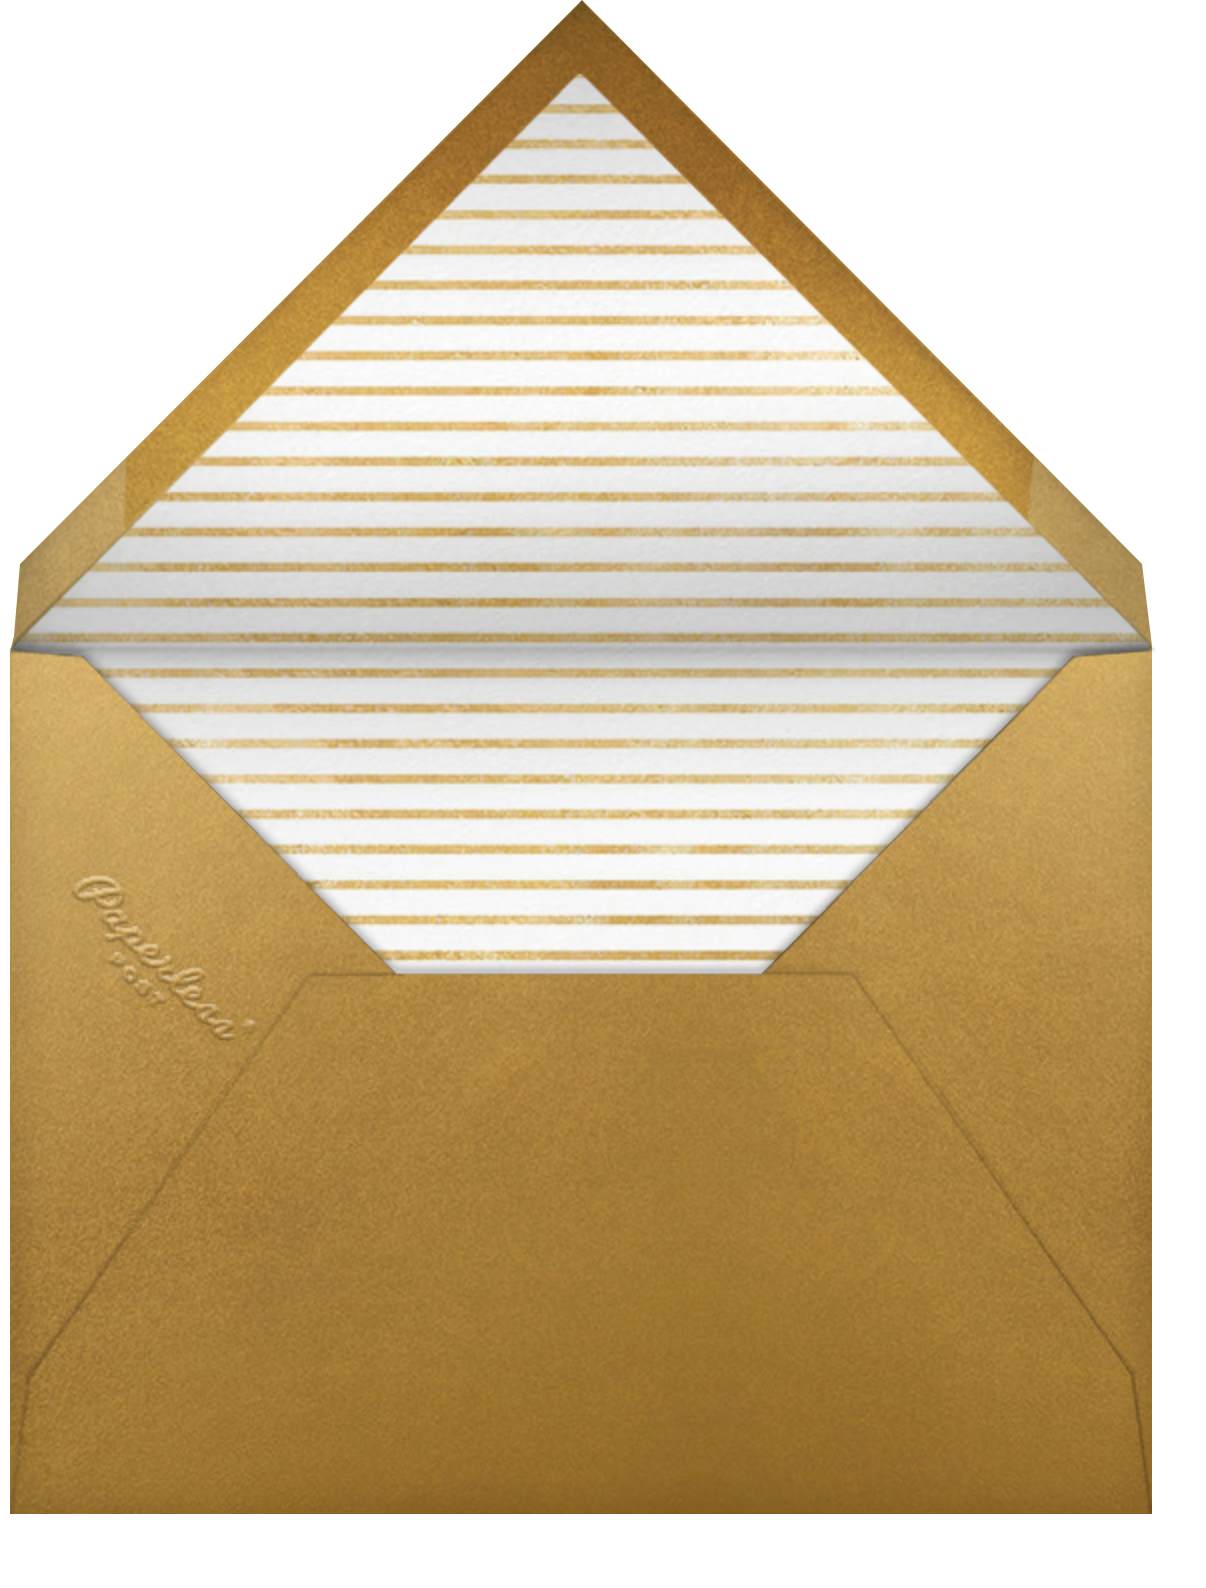 Snapshot Gold - Tall - Paperless Post - Cocktail party - envelope back